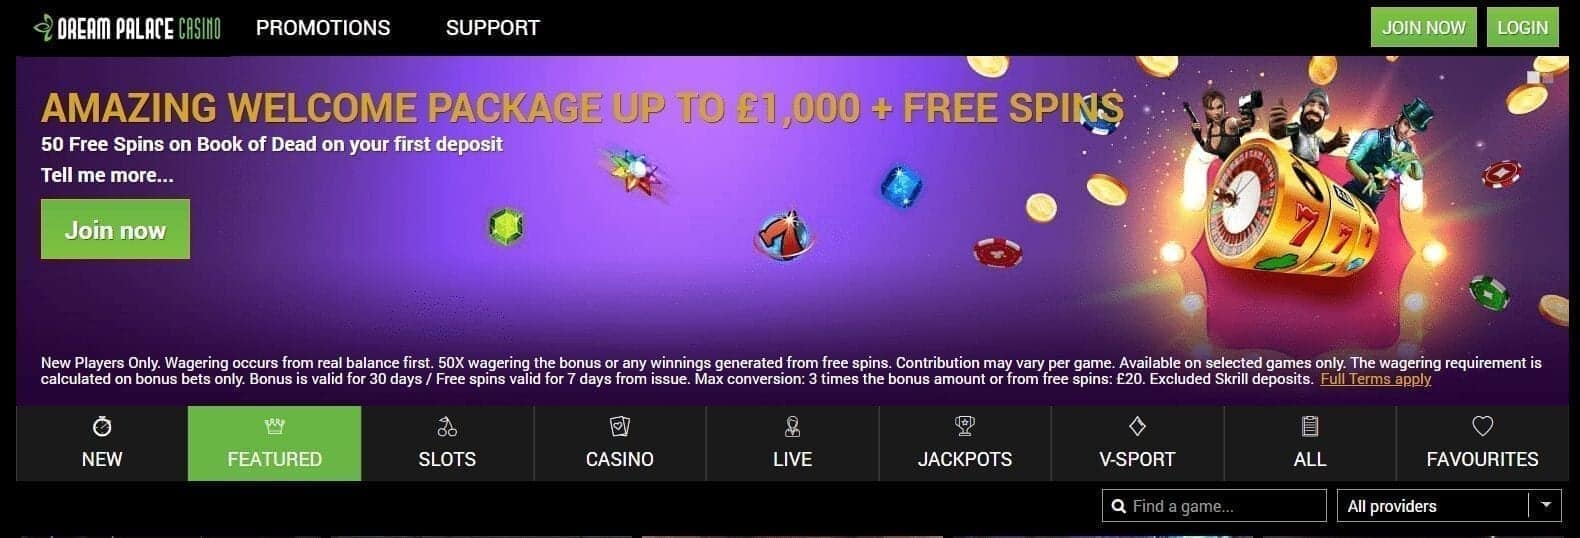 Dream Palace Casino Home Page